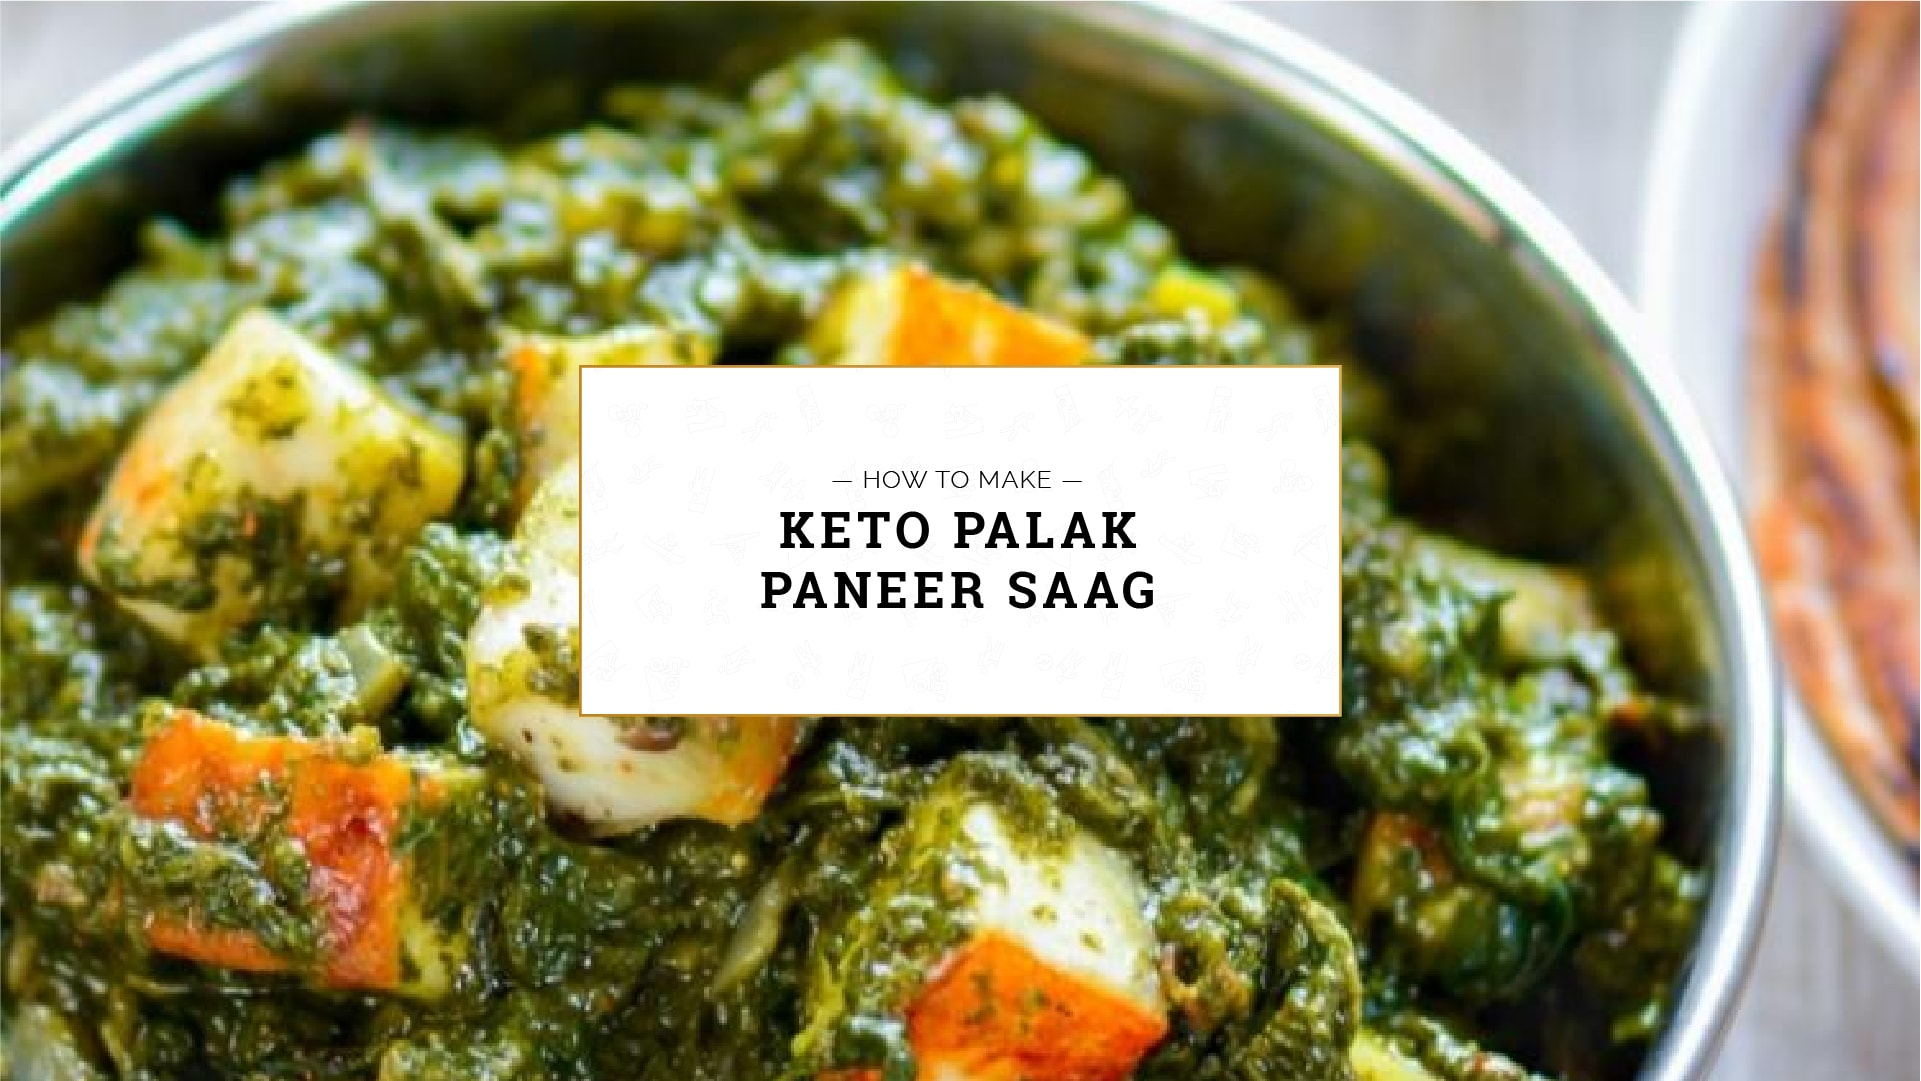 Keto Palak Paneer Saag, how to make keto palak paneer saag